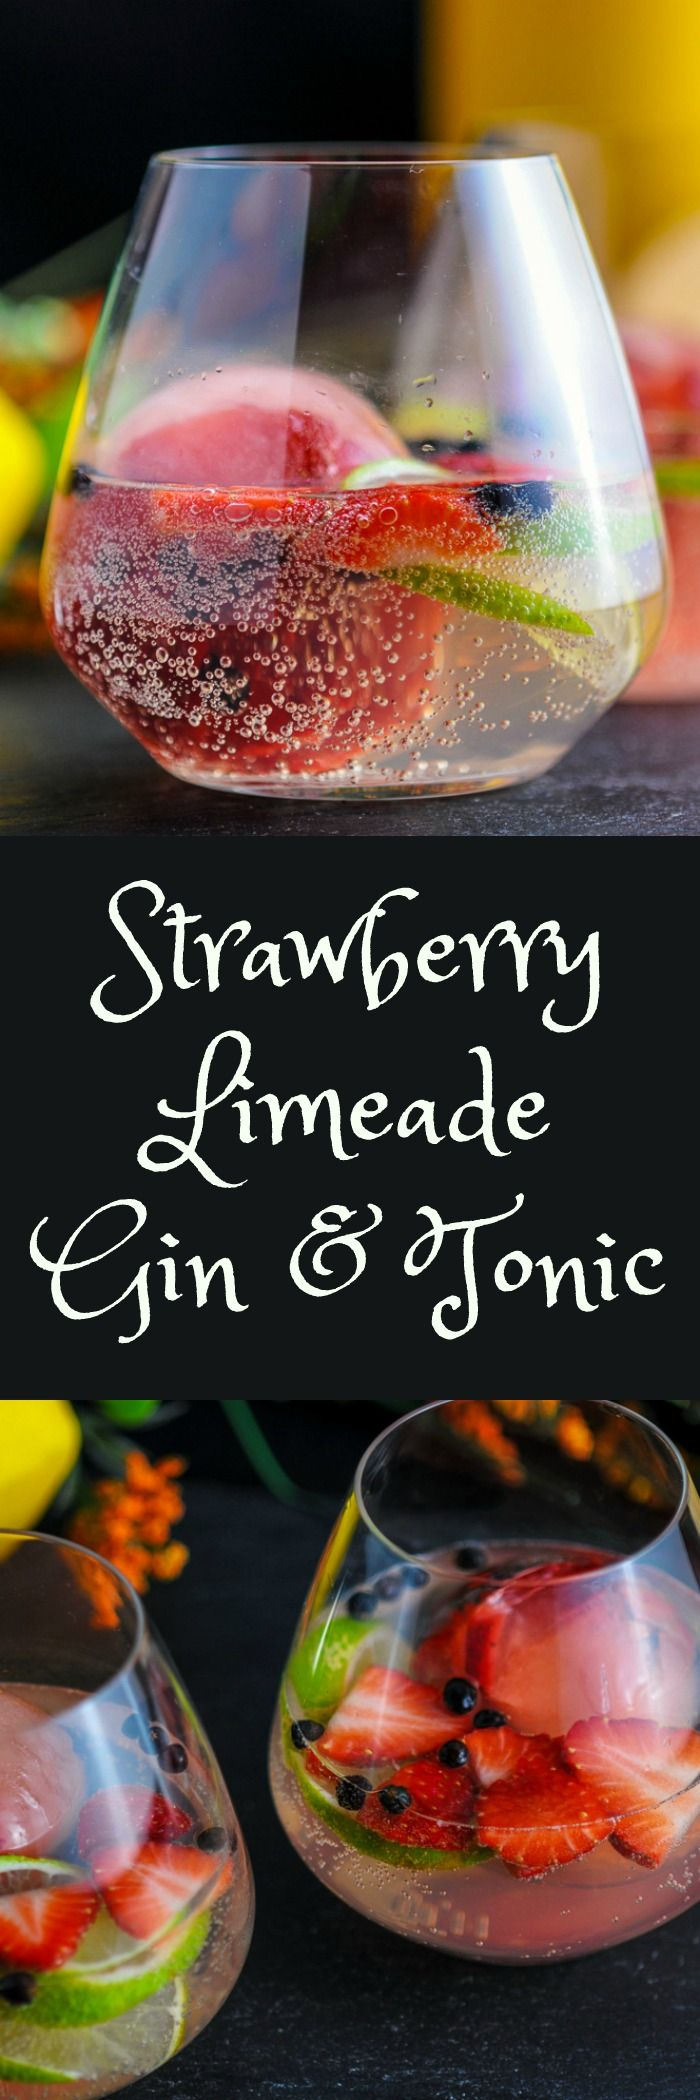 Strawberry Limeade Gin & Tonic - strawberries, limes, tonic water, gin, juniper berries, ice ball  recipe.